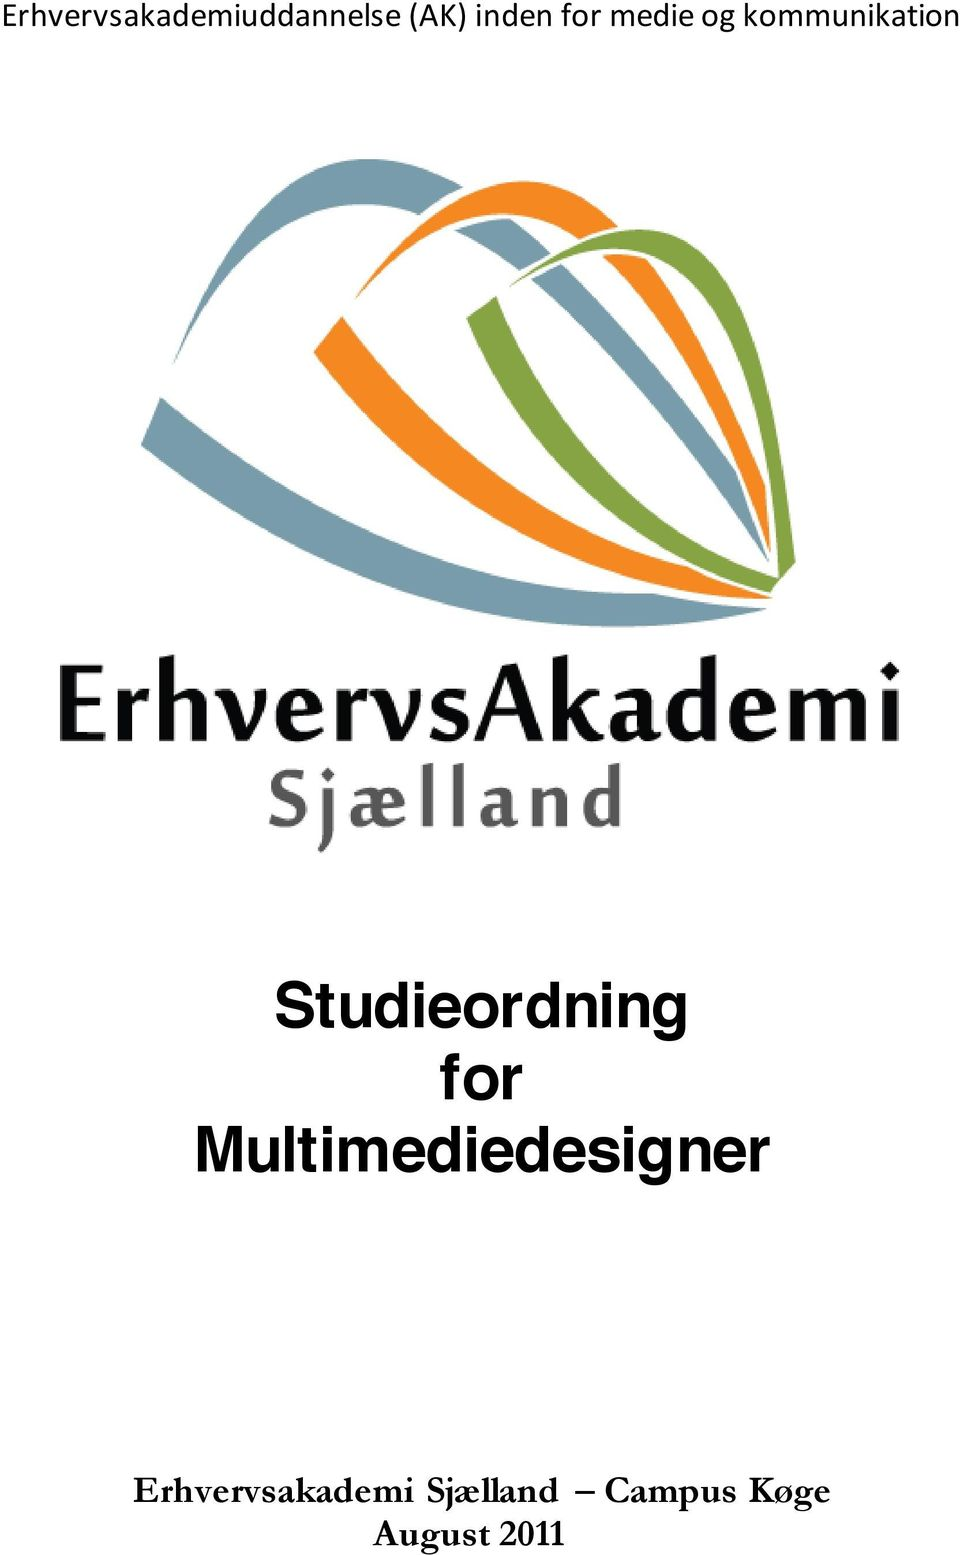 Studieordning for Multimediedesigner